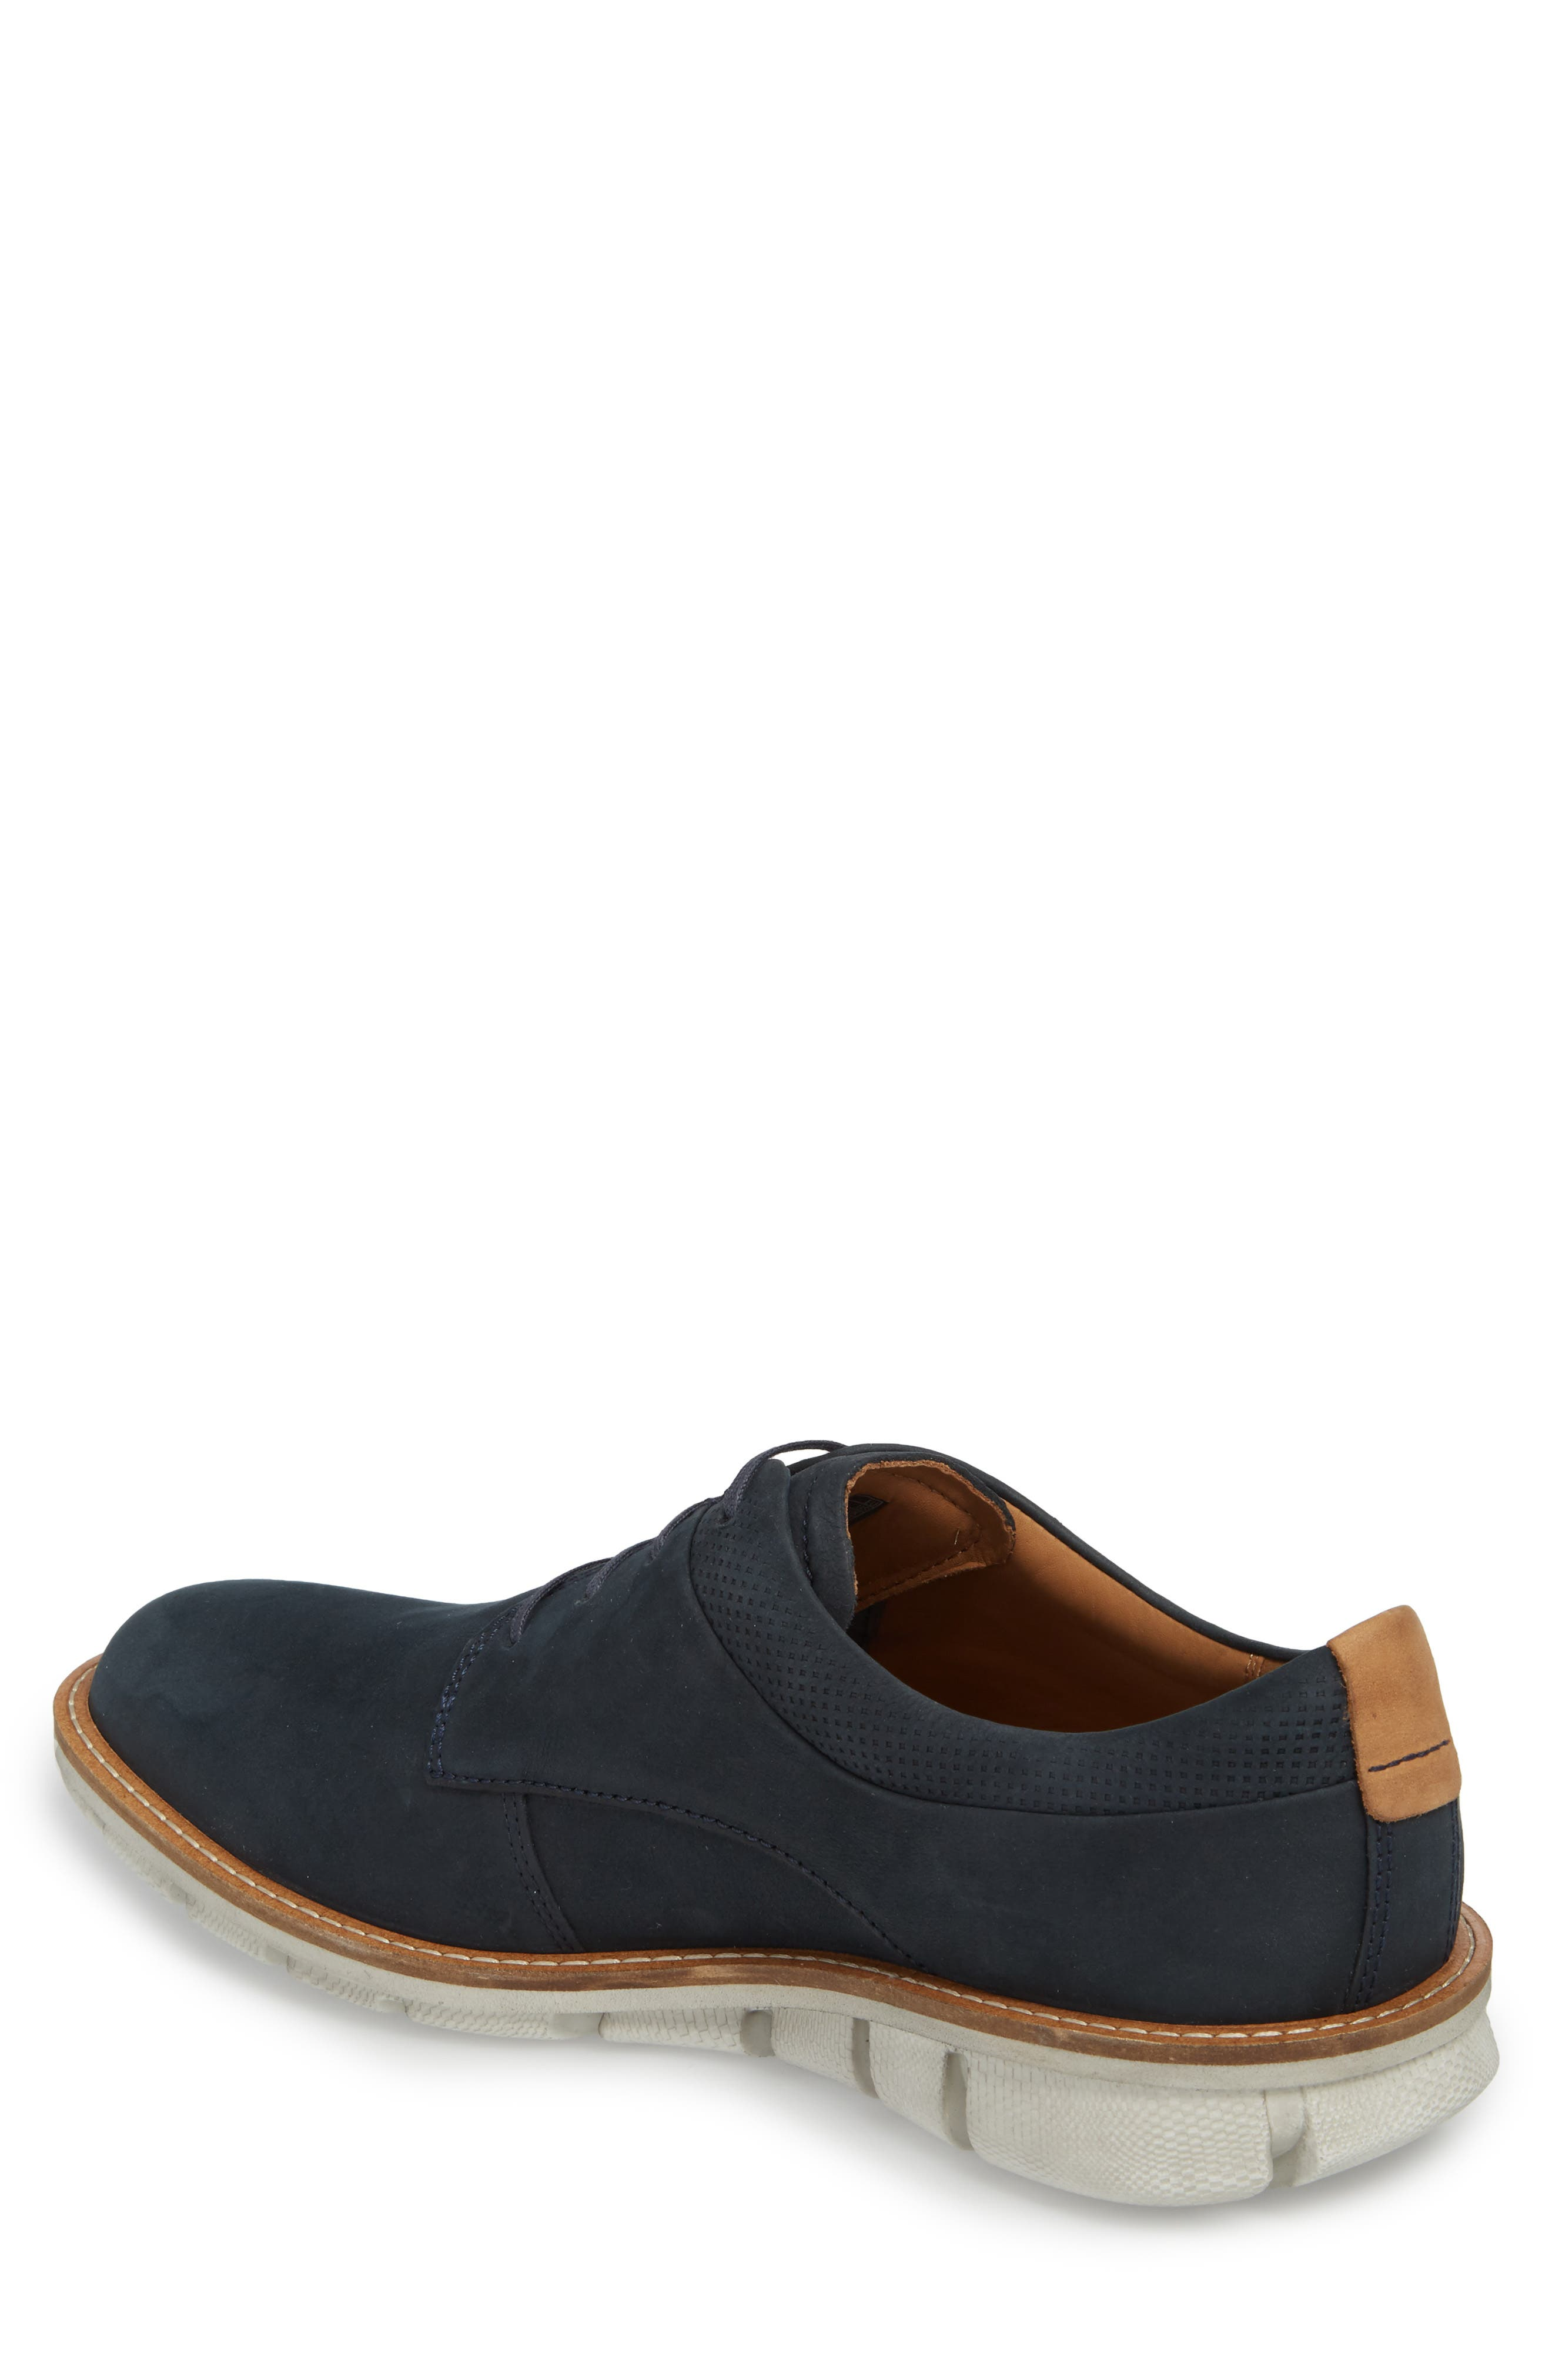 Jeremy Hybrid Plain Toe Derby,                             Alternate thumbnail 2, color,                             NAVY LEATHER